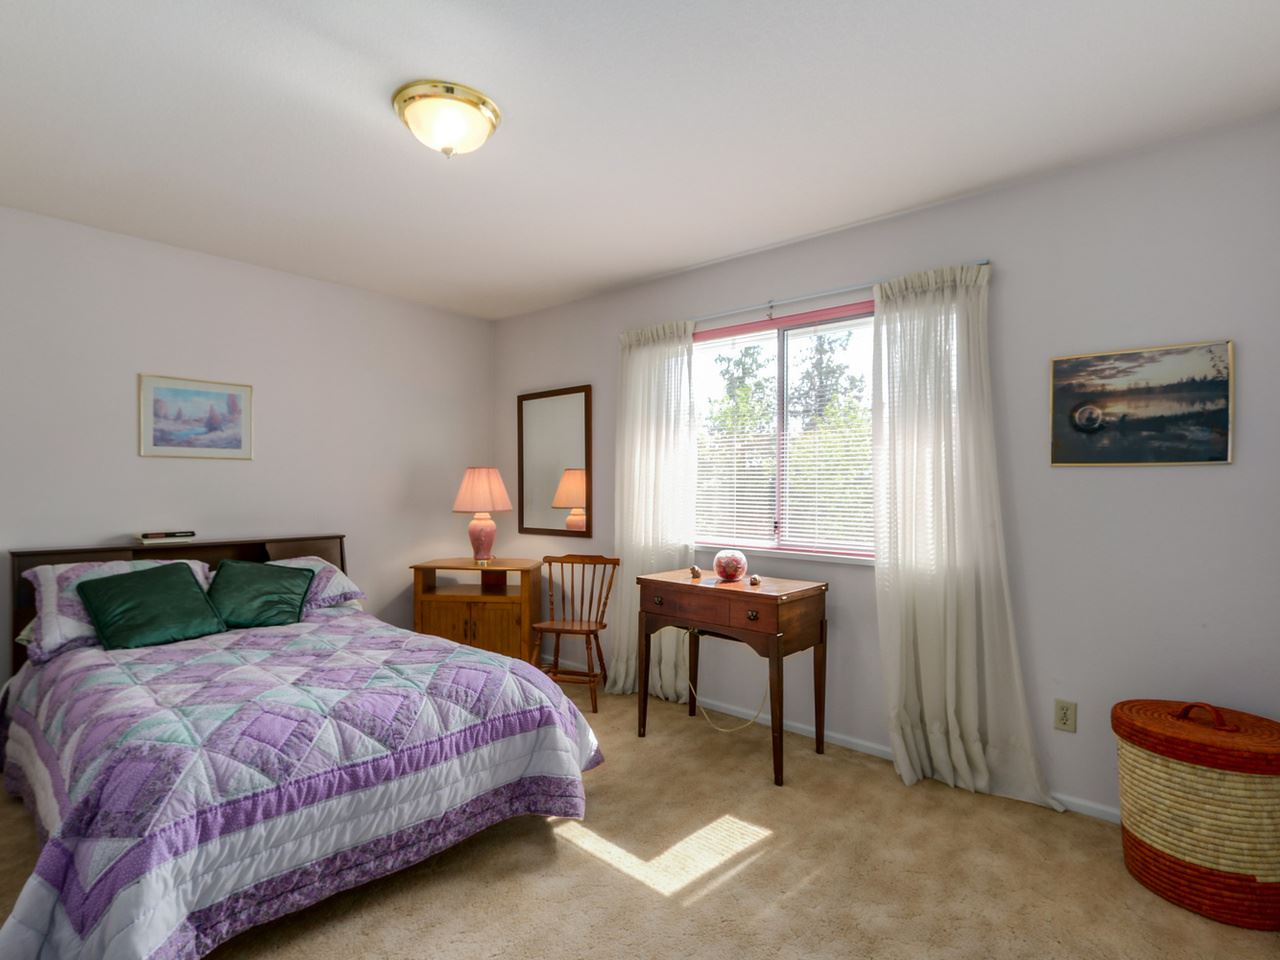 Photo 16: 2744 CANIM Avenue in Coquitlam: Coquitlam East House for sale : MLS(r) # R2059408